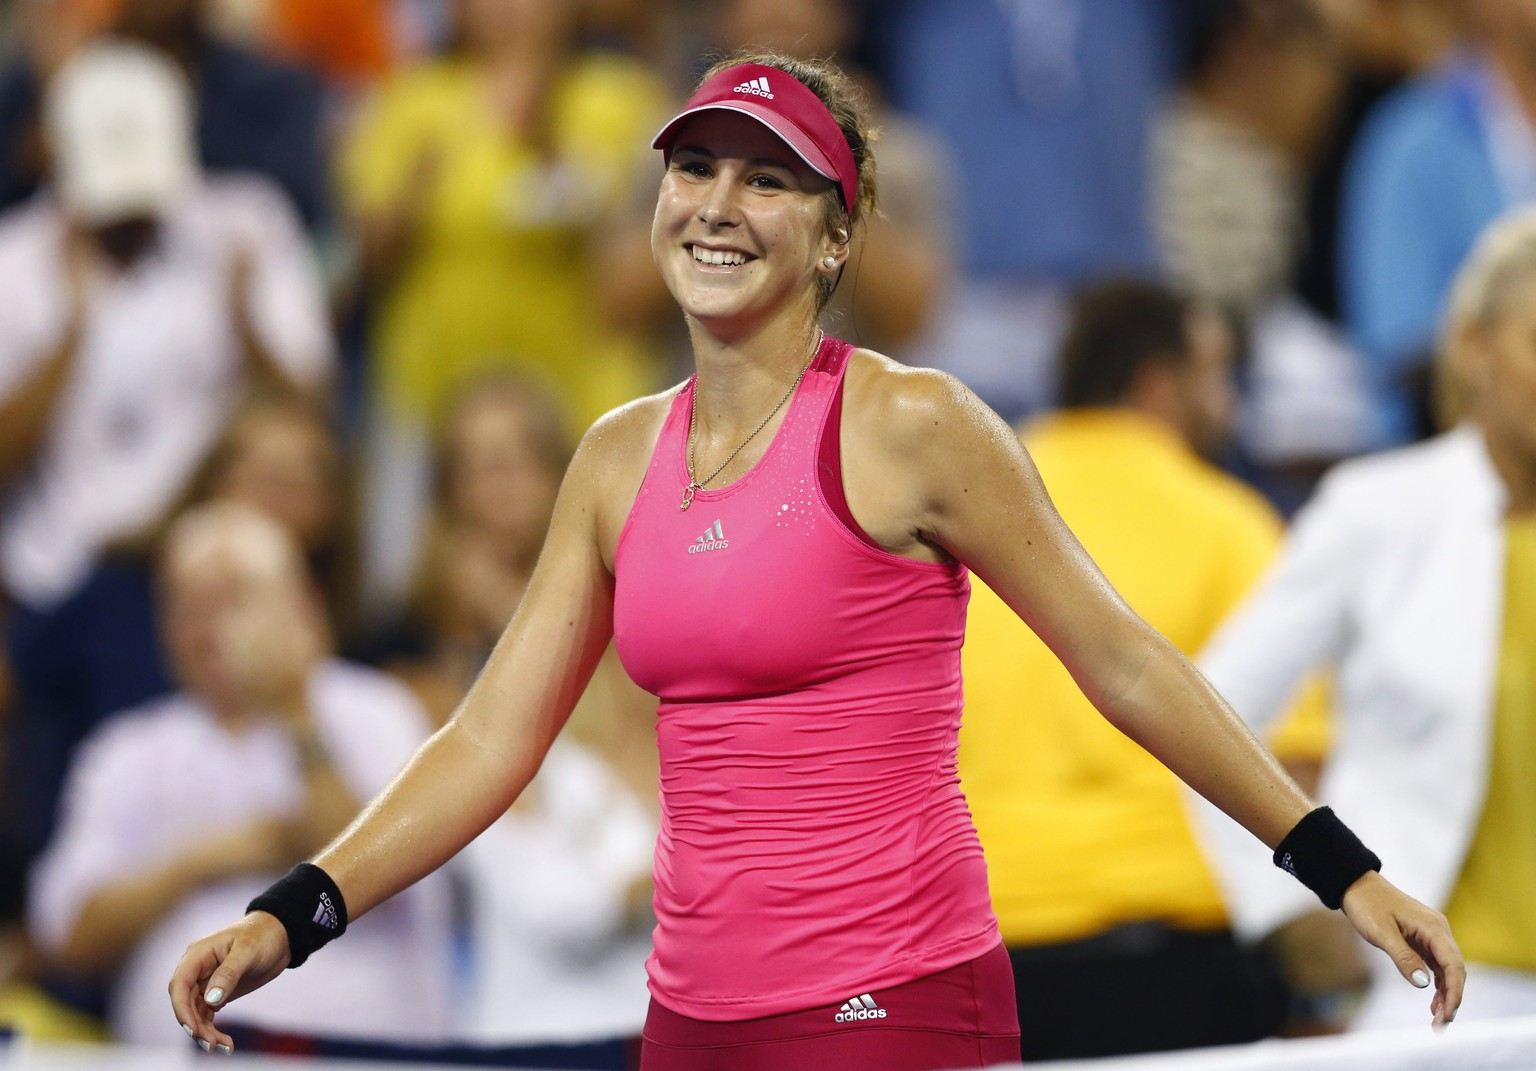 Belinda Bencic of Switzerland reacts after defeating Jelena Jankovic of Serbia during their women's singles match at the 2014 U.S. Open tennis tournament in New York August 31, 2014. REUTERS/Adam Hunger (UNITED STATES  - Tags: SPORT TENNIS)